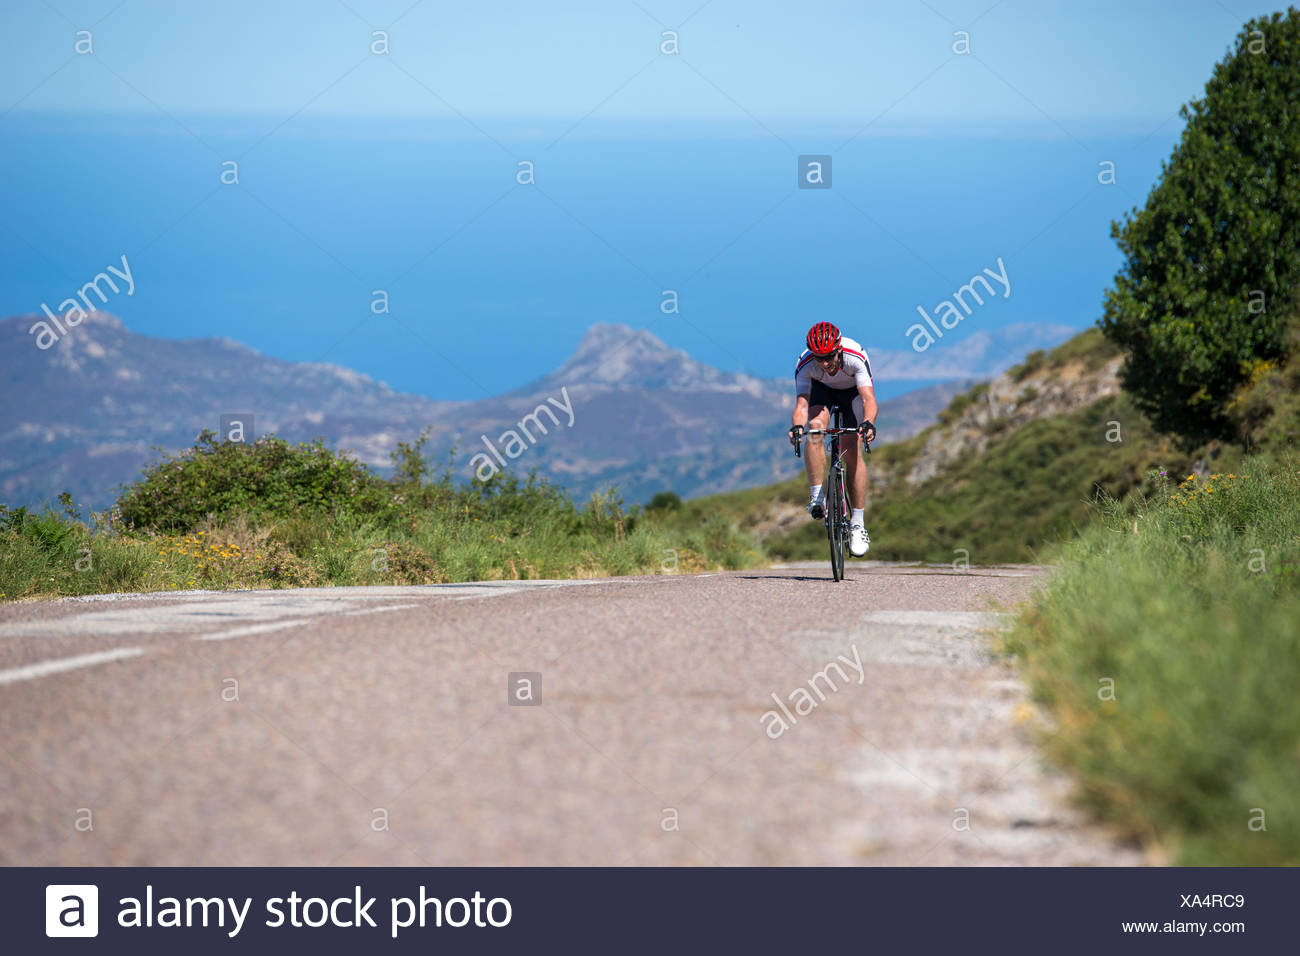 France, Corsica, Road biker racing towards camera - Stock Image